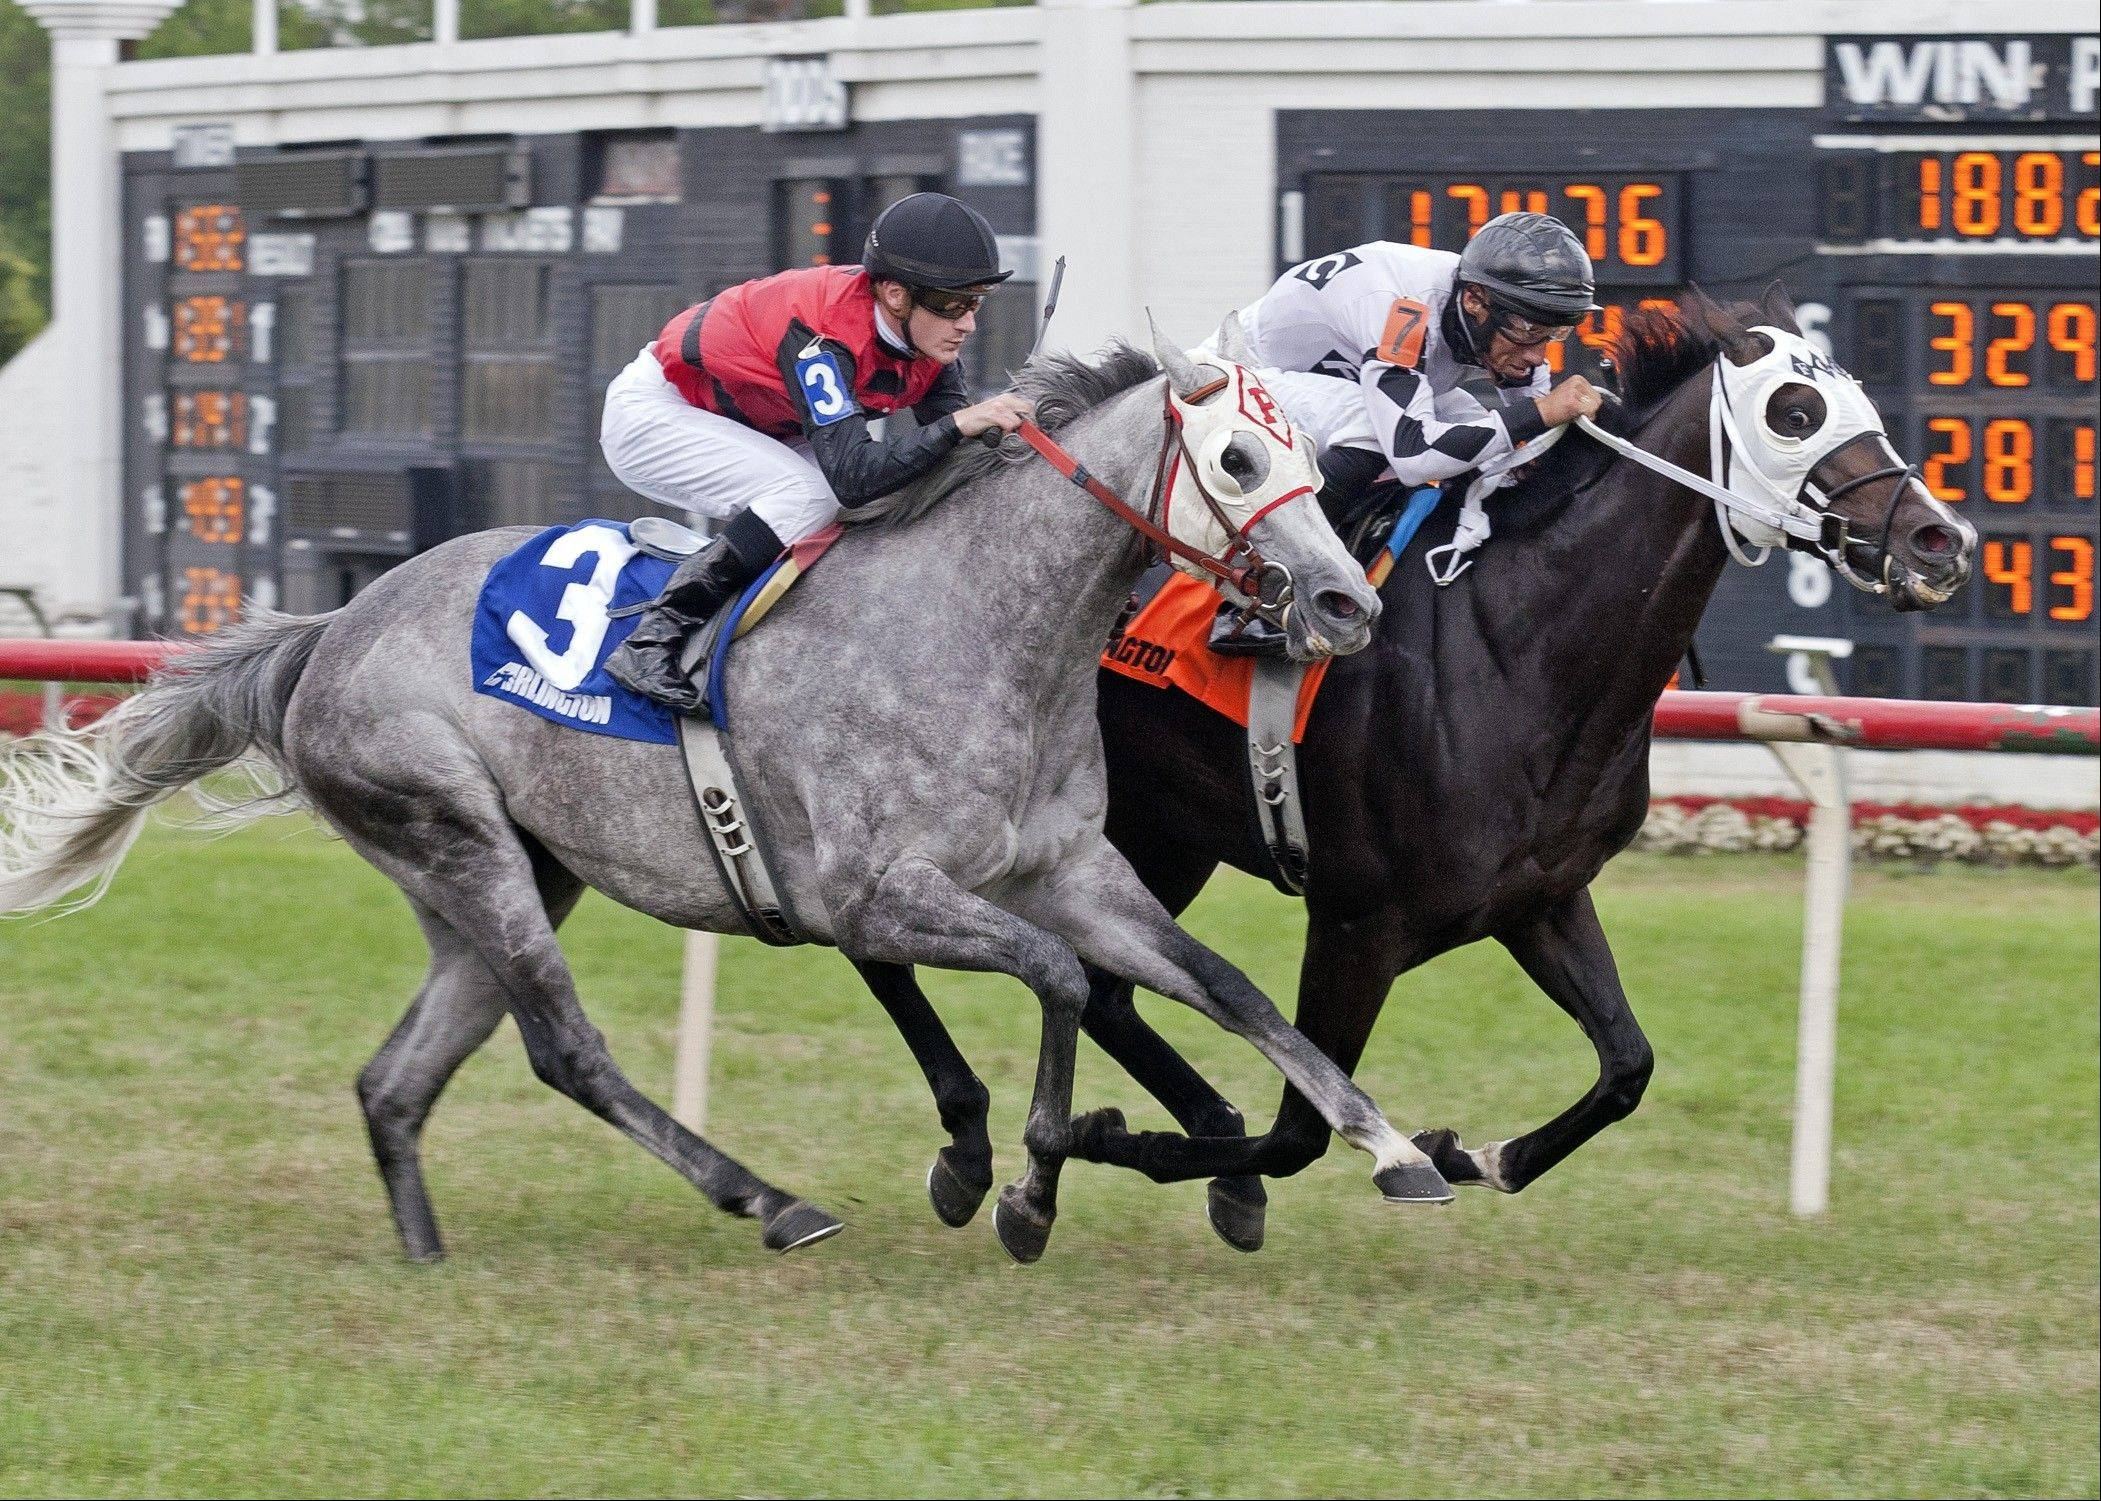 With jockey Francisco Torres aboard, Romacaca won the Modesty Handicap at Arlington Park in July. Now the mare, trained by Danny Miller of Palatine for owner Frank Calabrese, will go for her biggest win ever in Saturday's Beverly D. stakes race.